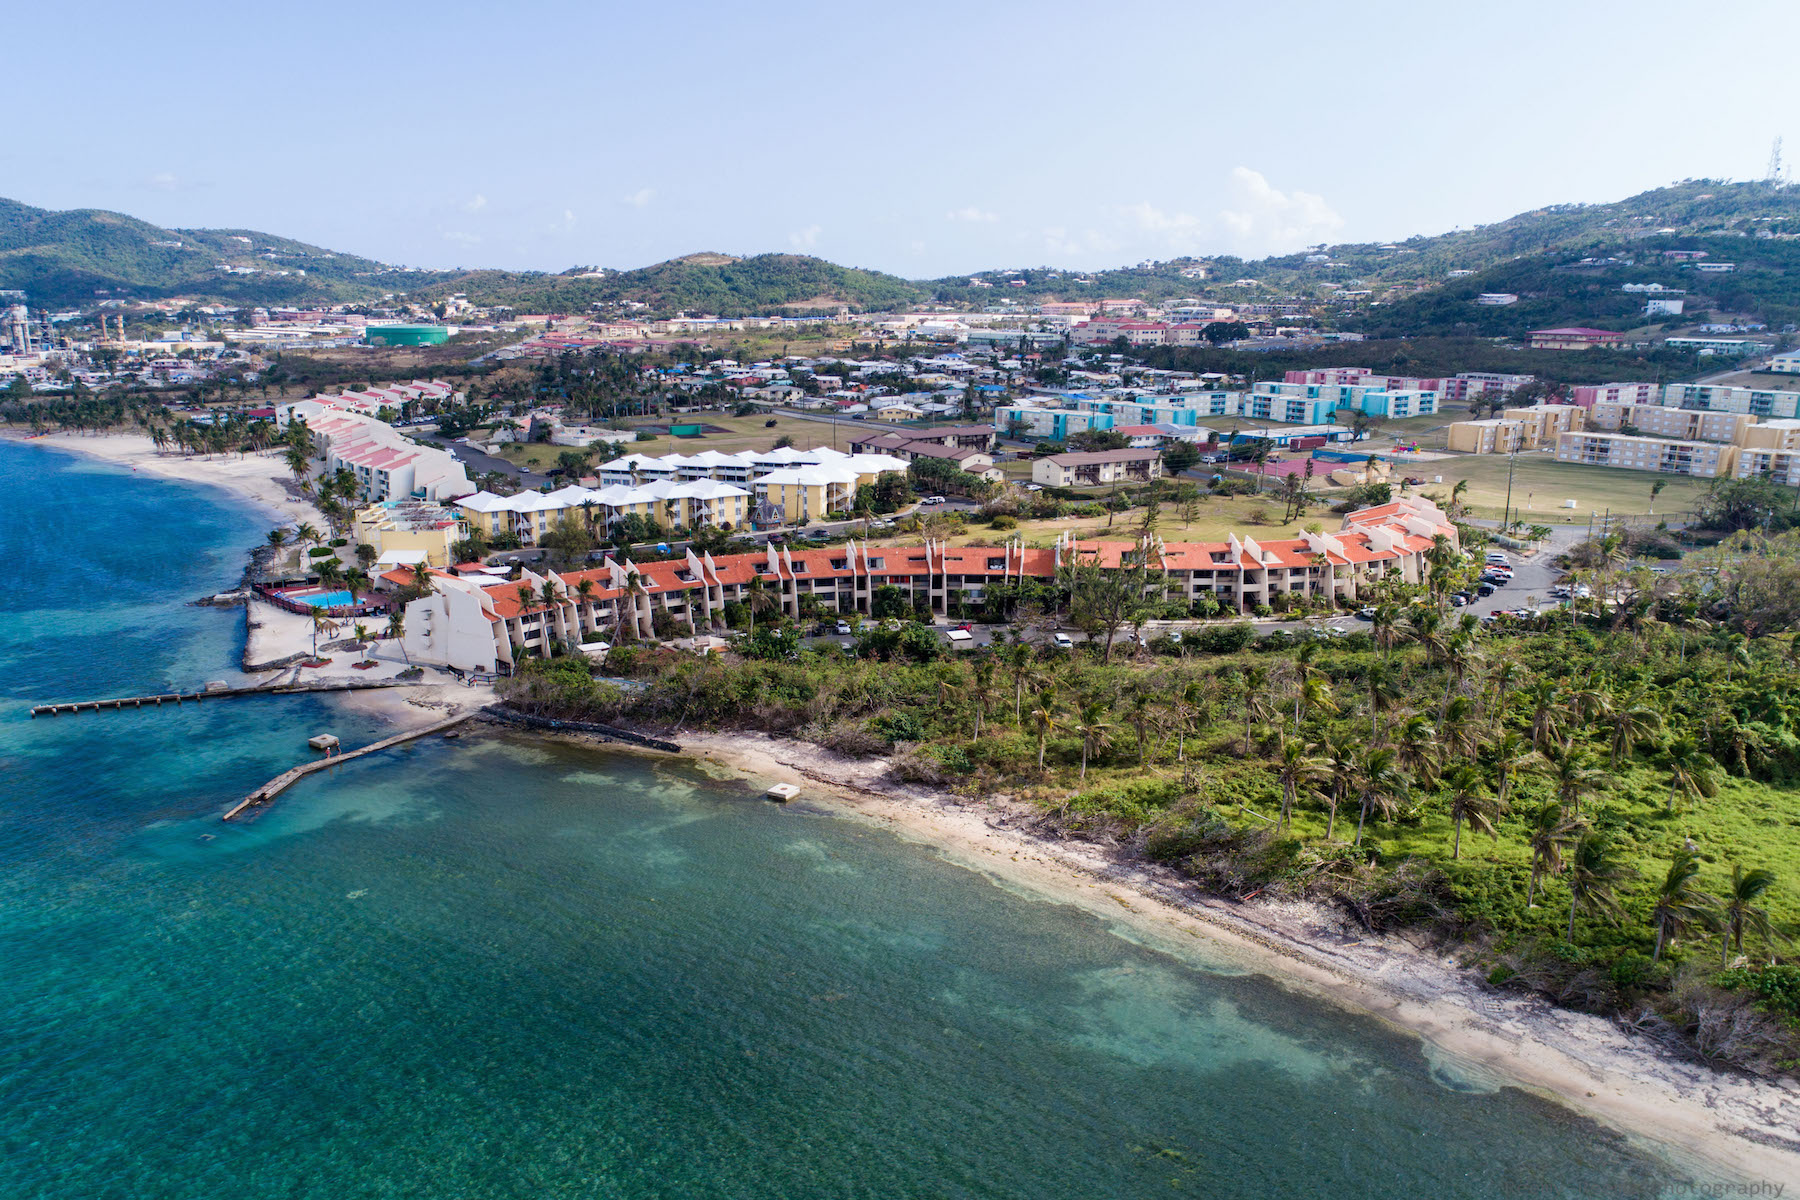 Condominium for Sale at 128 Mill Harbour 128 Mill Harbour St Croix, Virgin Islands 00820 United States Virgin Islands